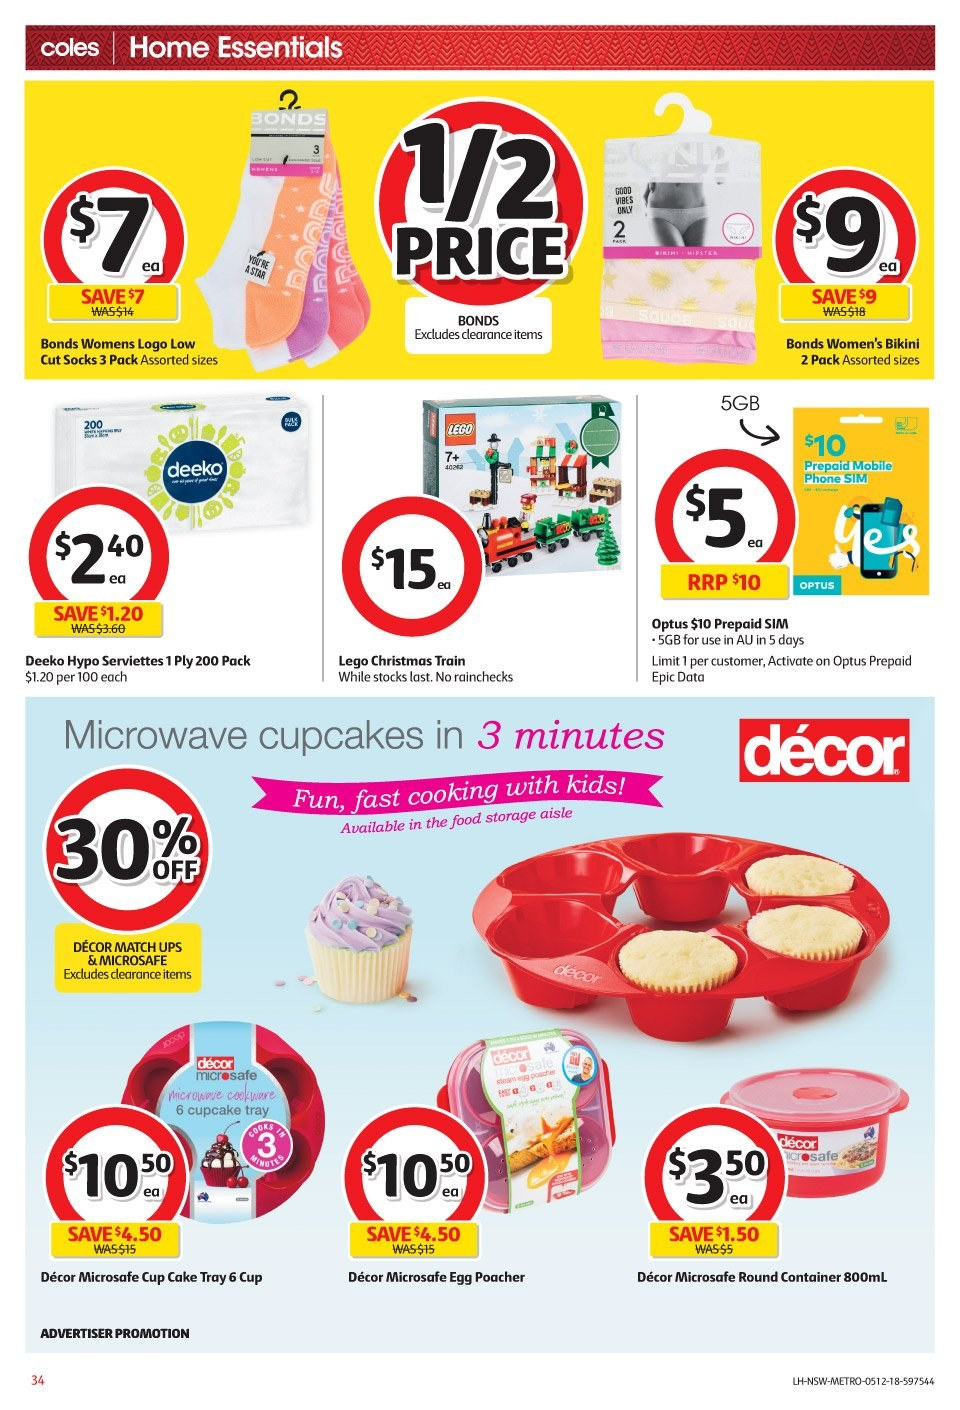 Coles Catalogue - 5.12.2018 - 11.12.2018 - Sales products - bikini, container, cup, cupcake, cupcakes, lego, microwave, socks, storage, tray. Page 34.